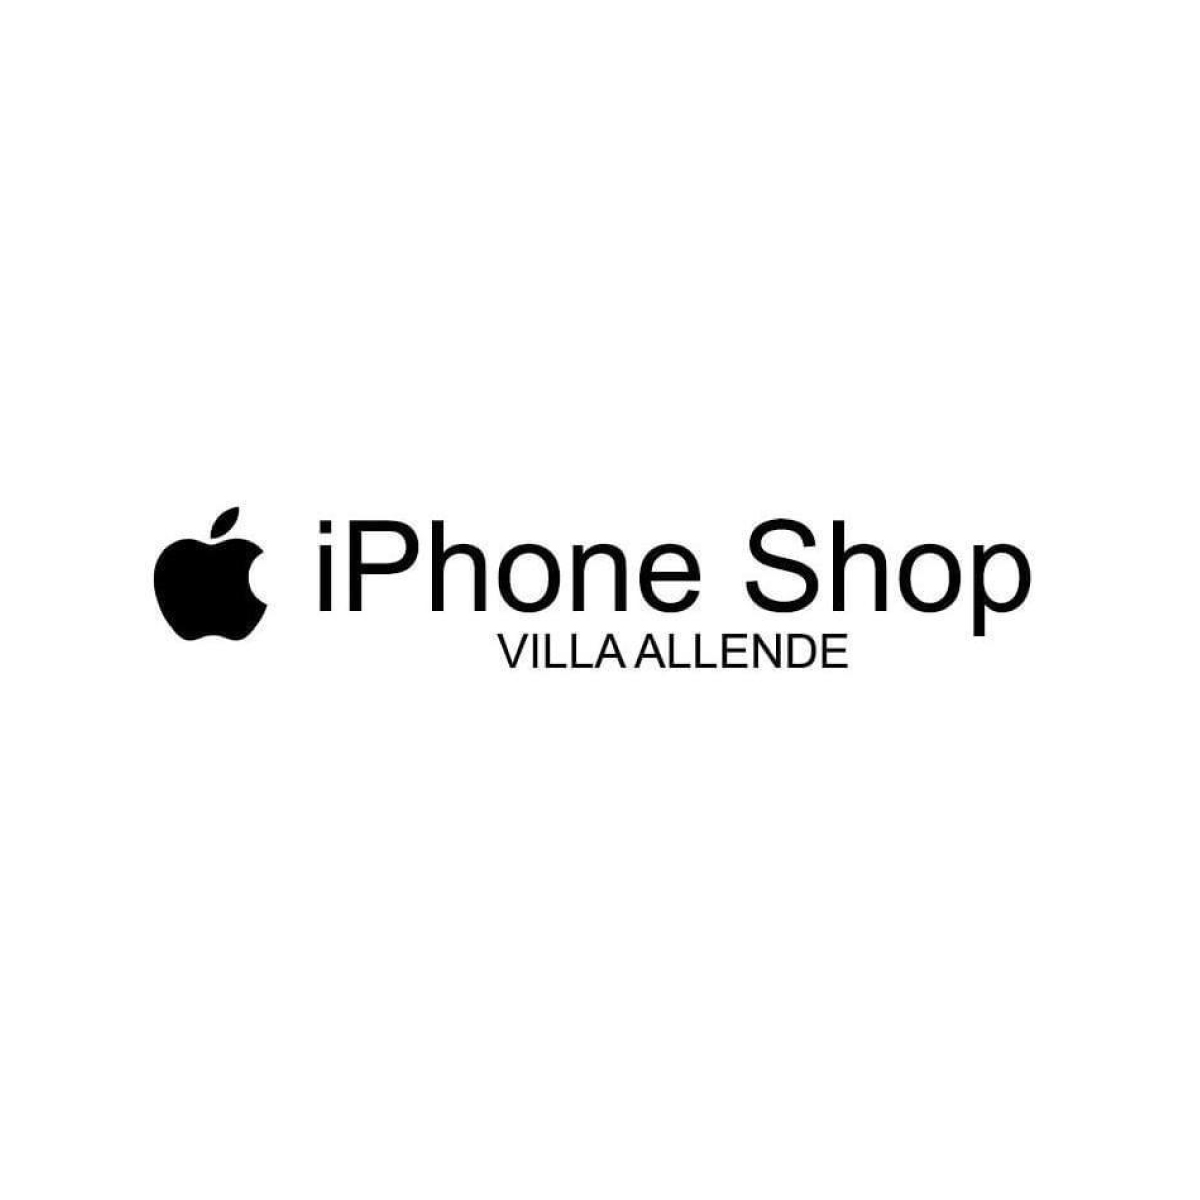 IPhone Shop Villa Allende